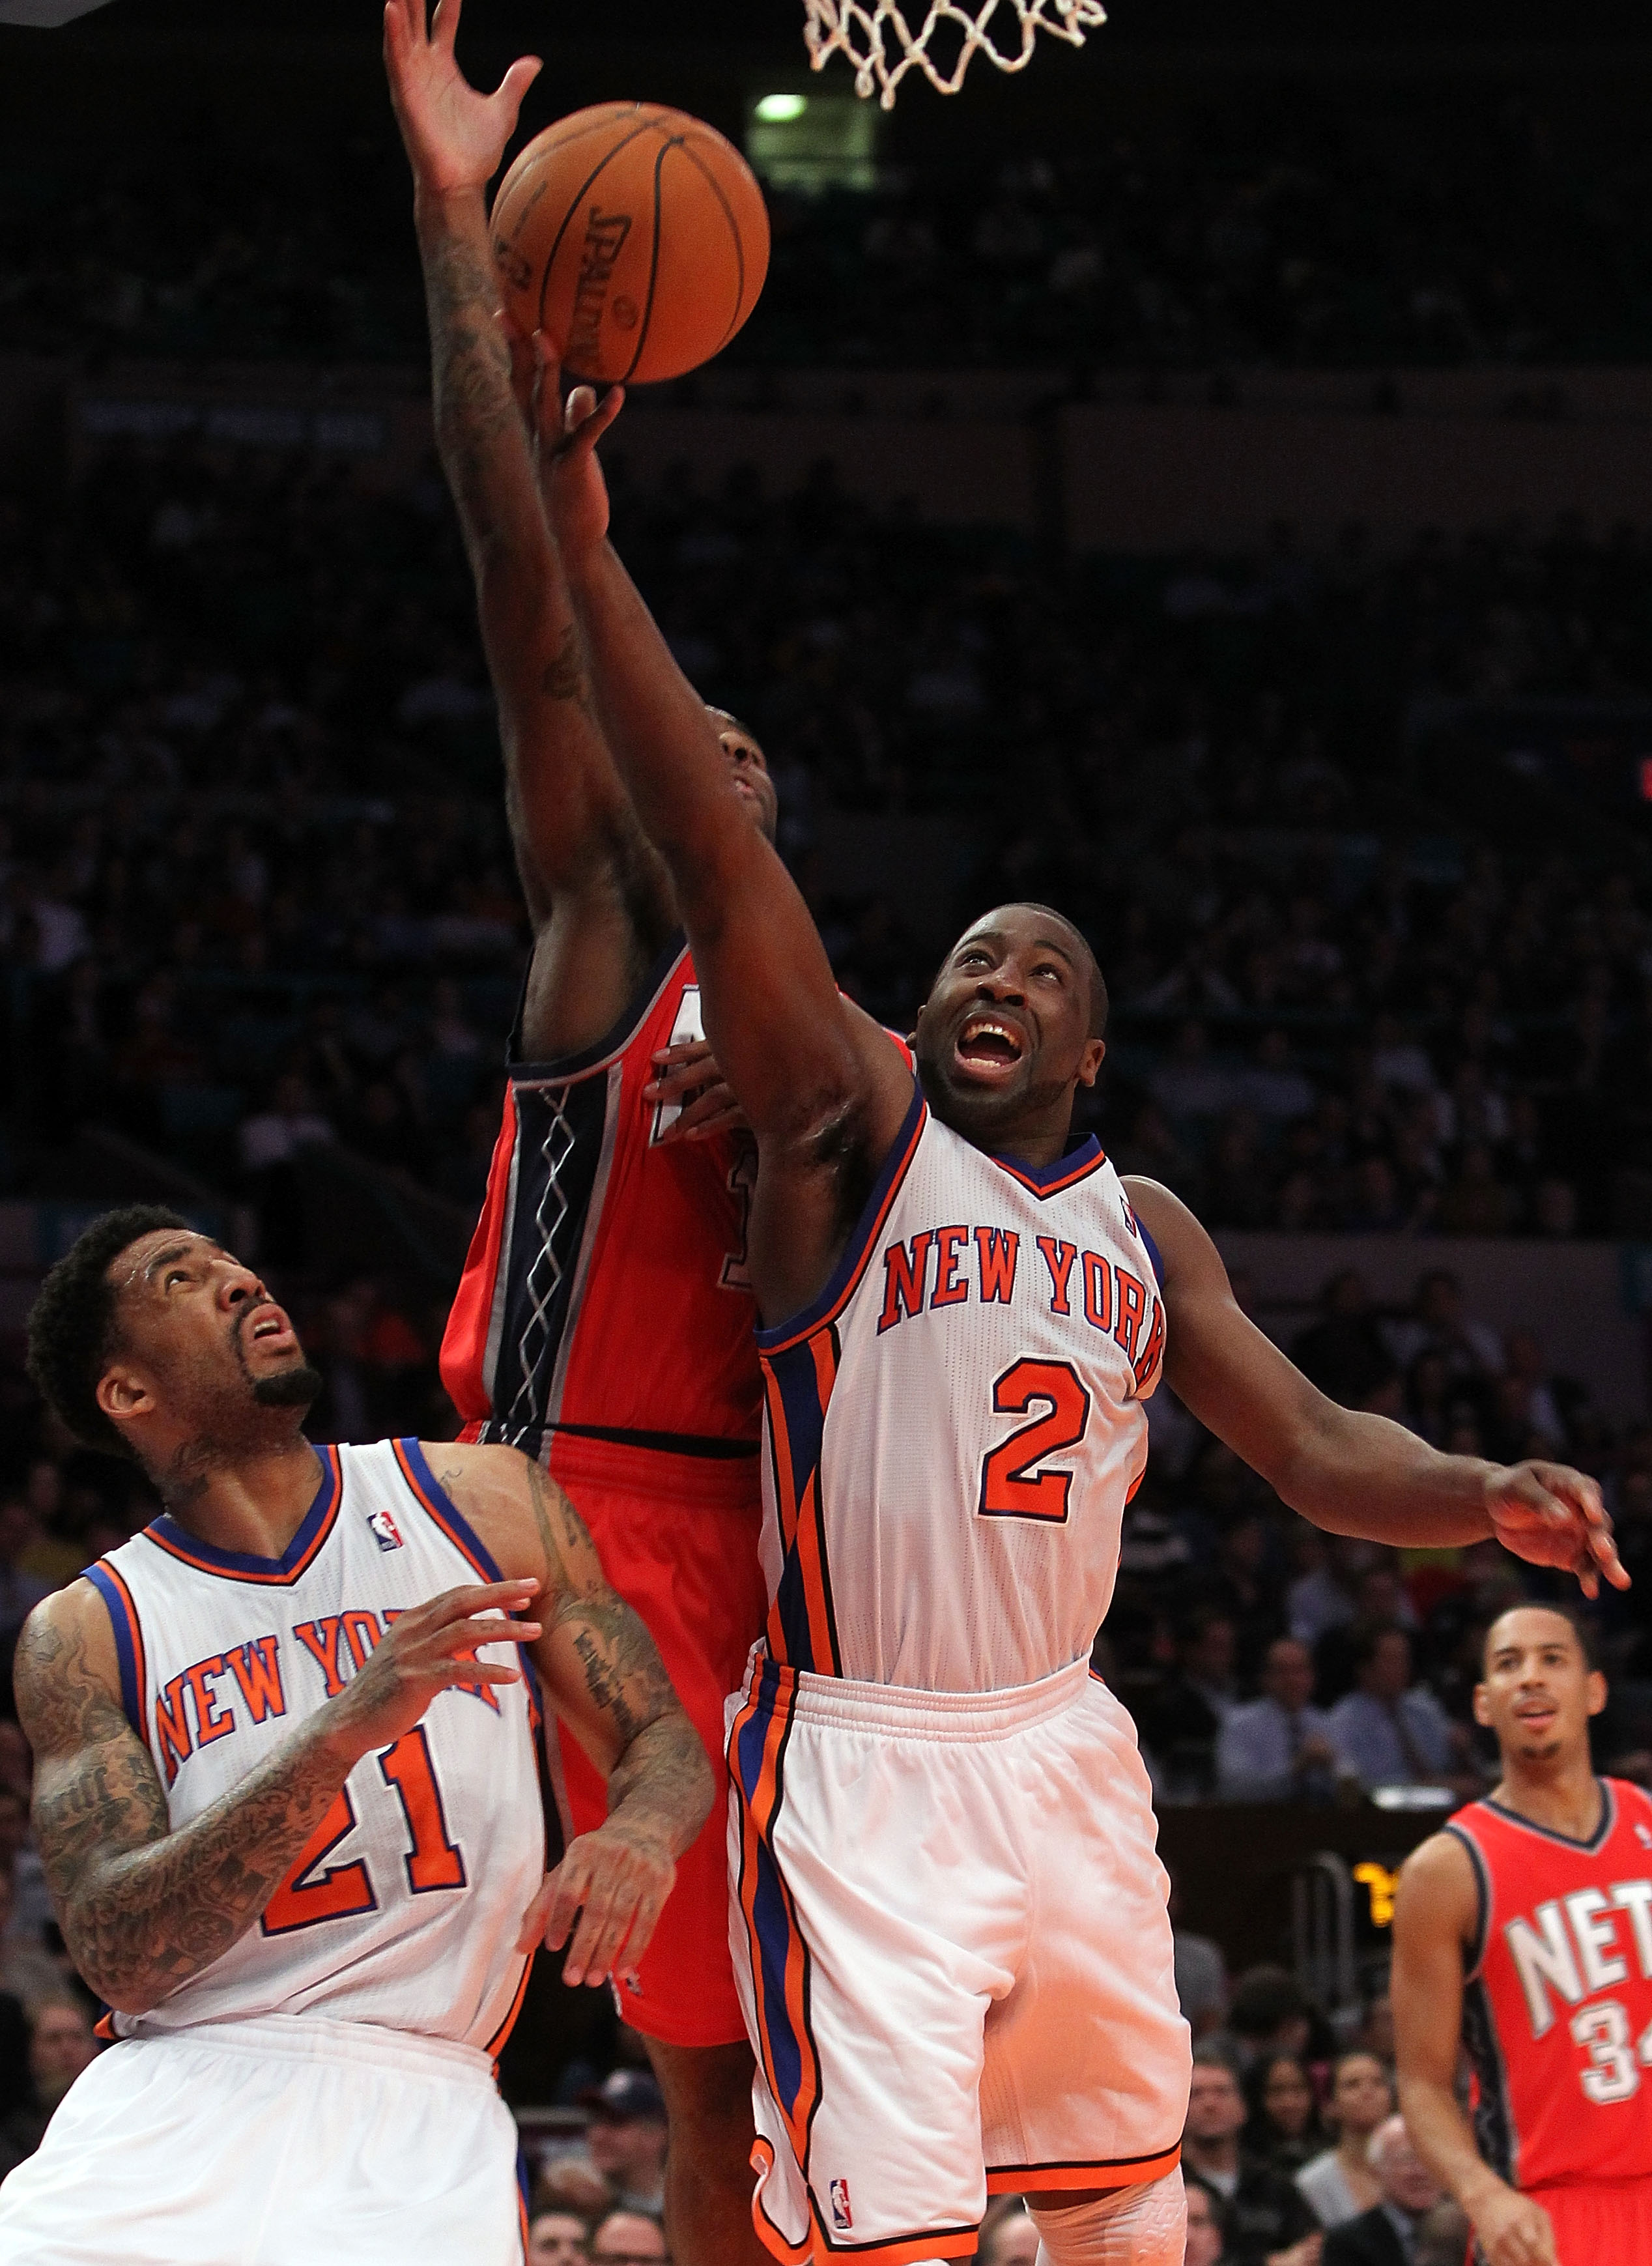 NEW YORK, NY - NOVEMBER 30:  Raymond Felton #2 of the New York Knicks lays the ball up agaisnt the New Jersey Nets on November 30, 2010 at Madison Square Garden in New York City. NOTE TO USER: User expressly acknowledges and agrees that, by downloading an